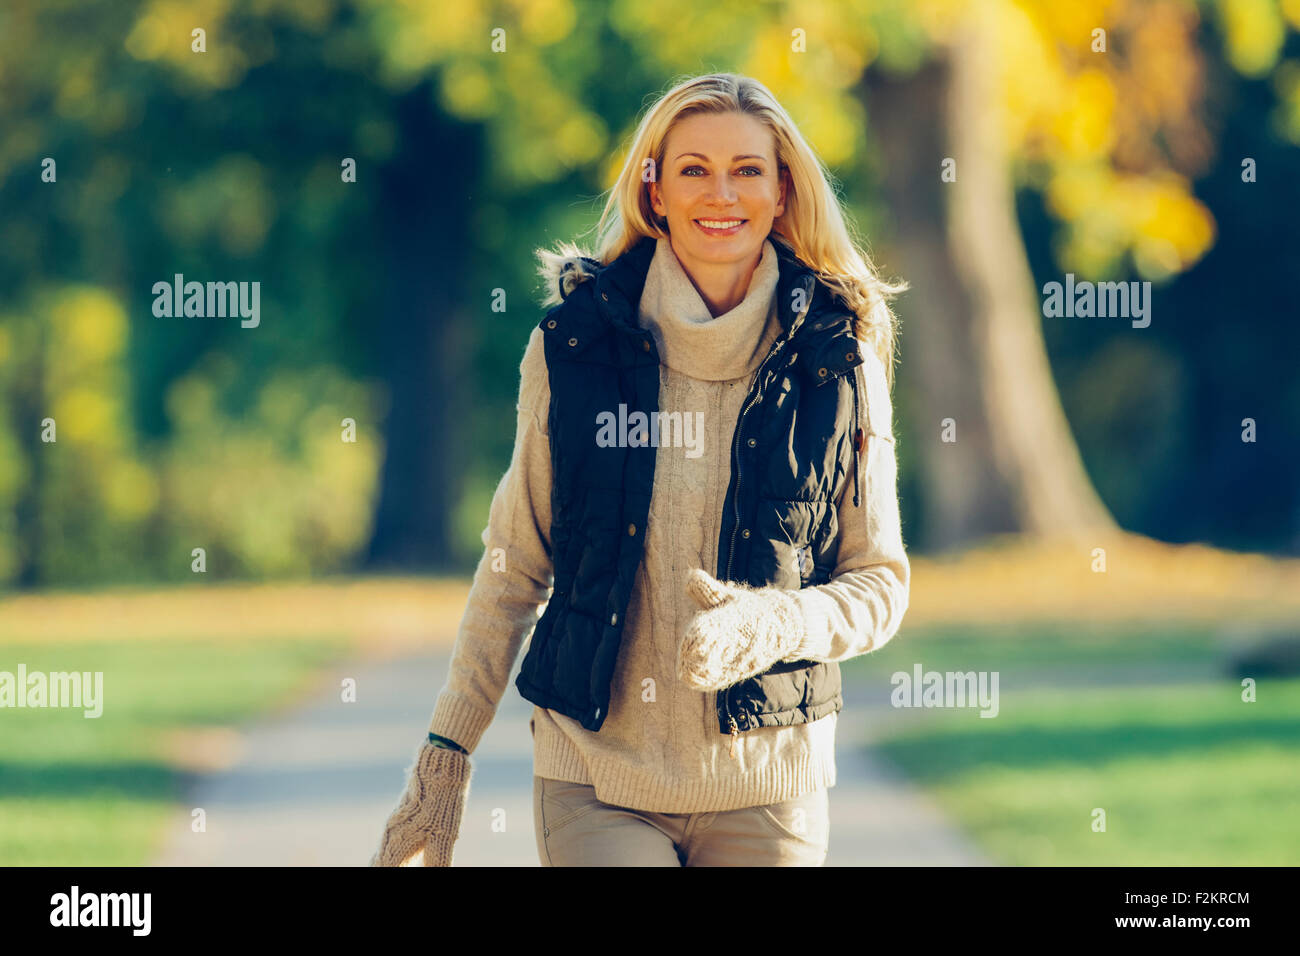 Portrait of smiling woman wearing warm clothes walking in a park - Stock Image